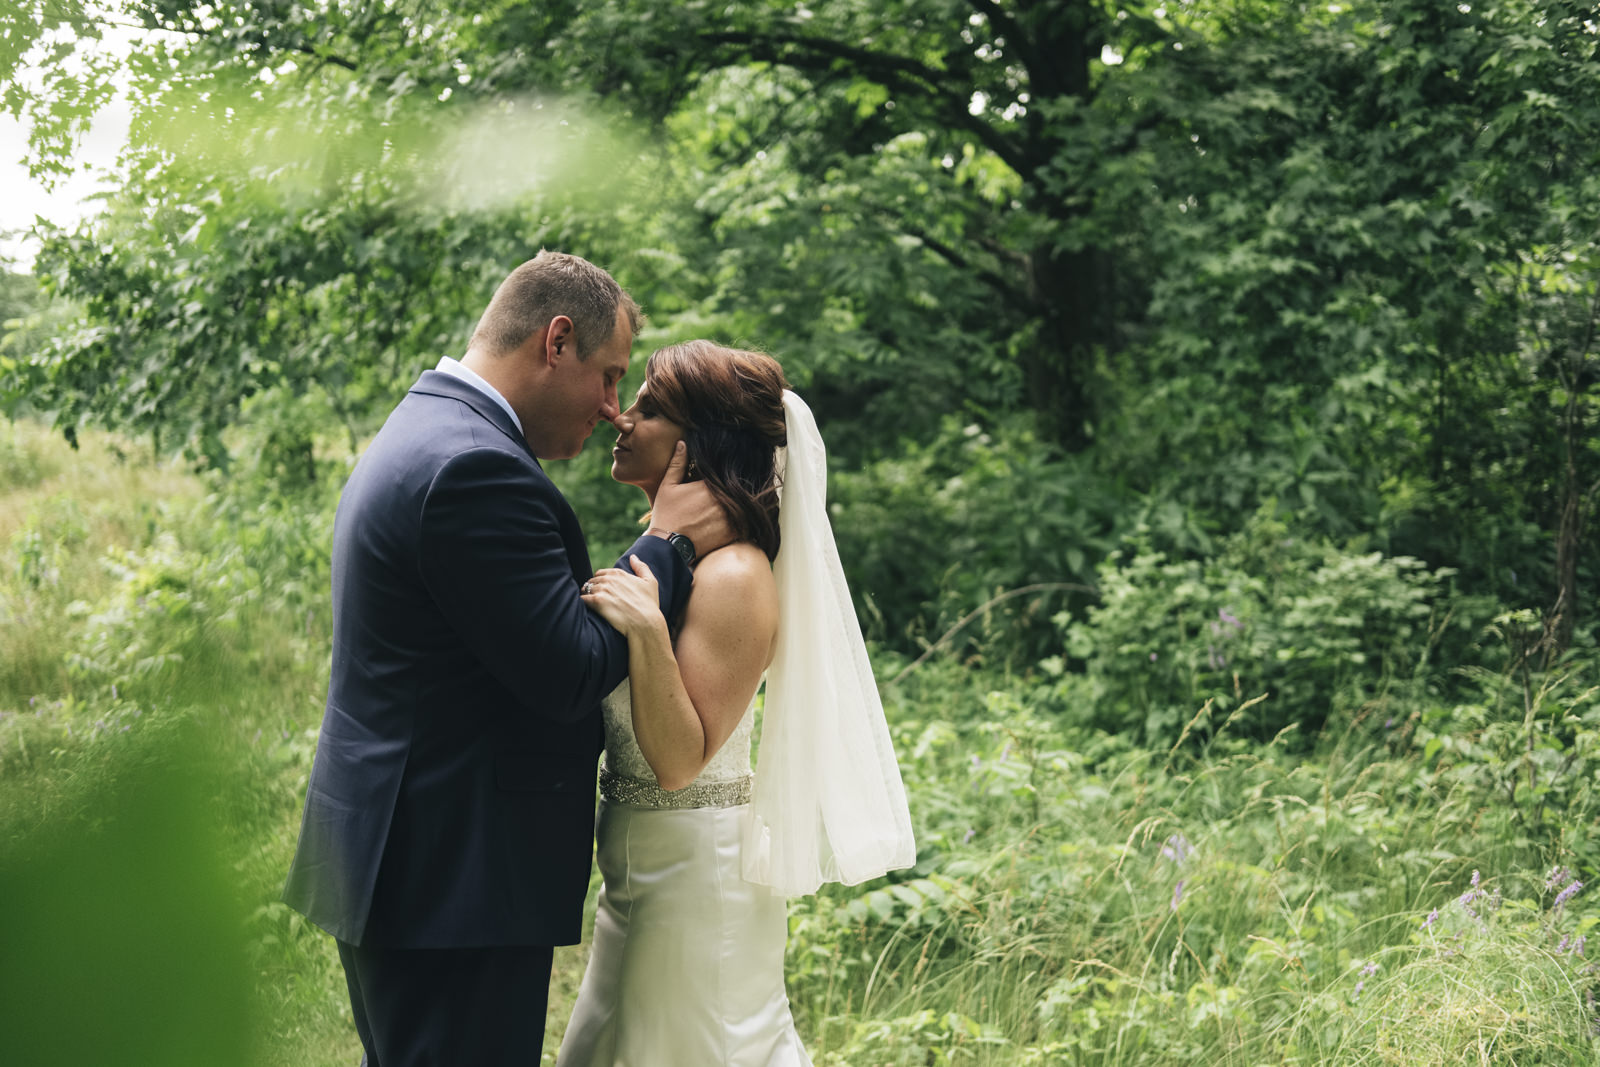 Bride and groom share a kiss before their wedding ceremony at Swan Creek Park.